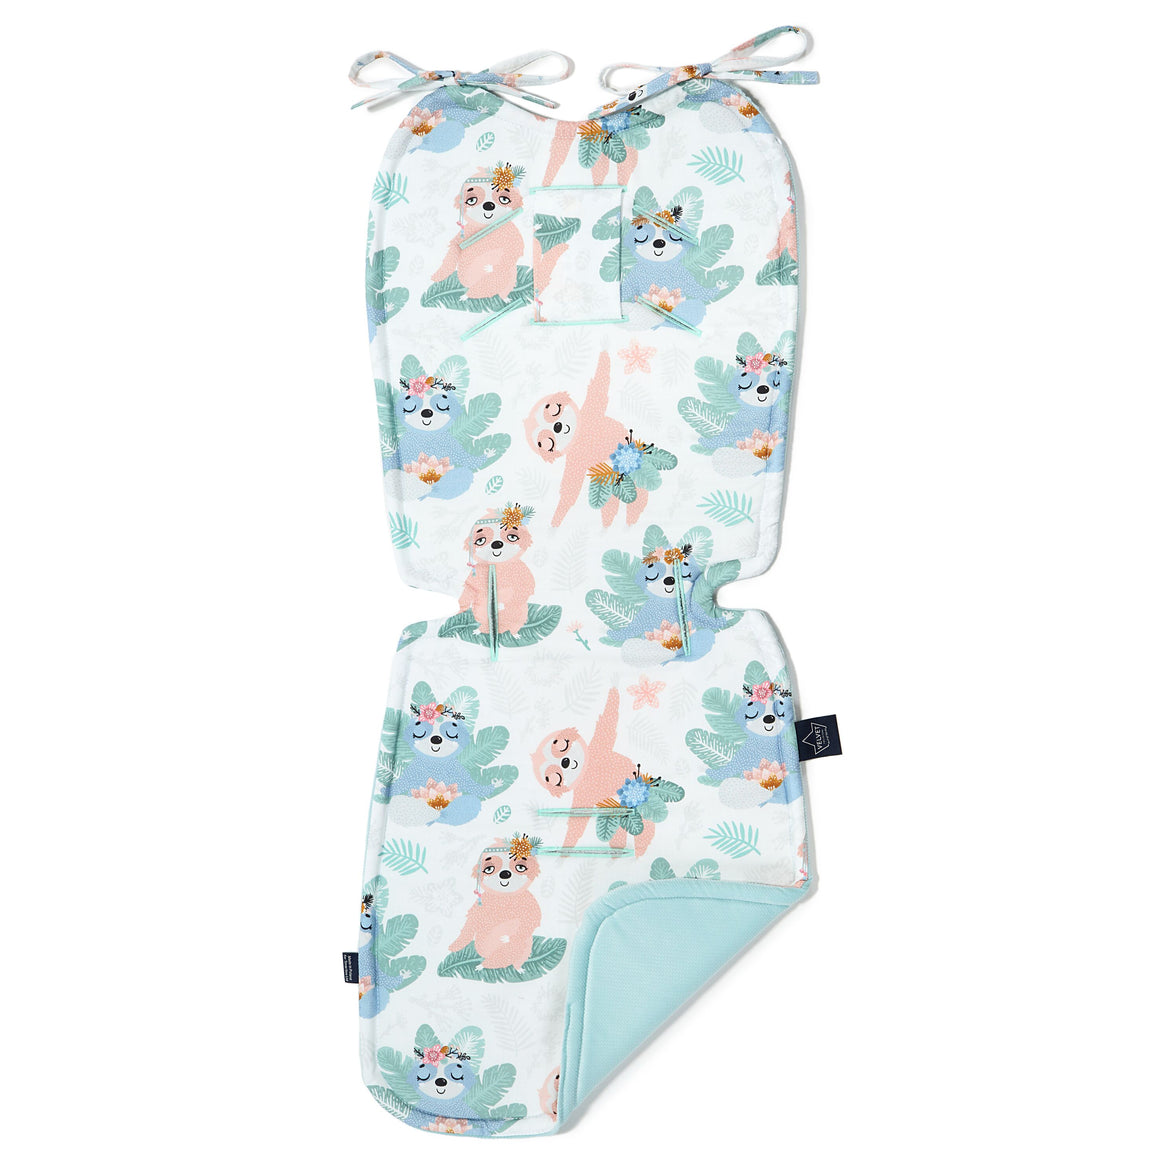 THICK STROLLER PAD - Yoga Candy Sloths | Velvet Audrey Mint